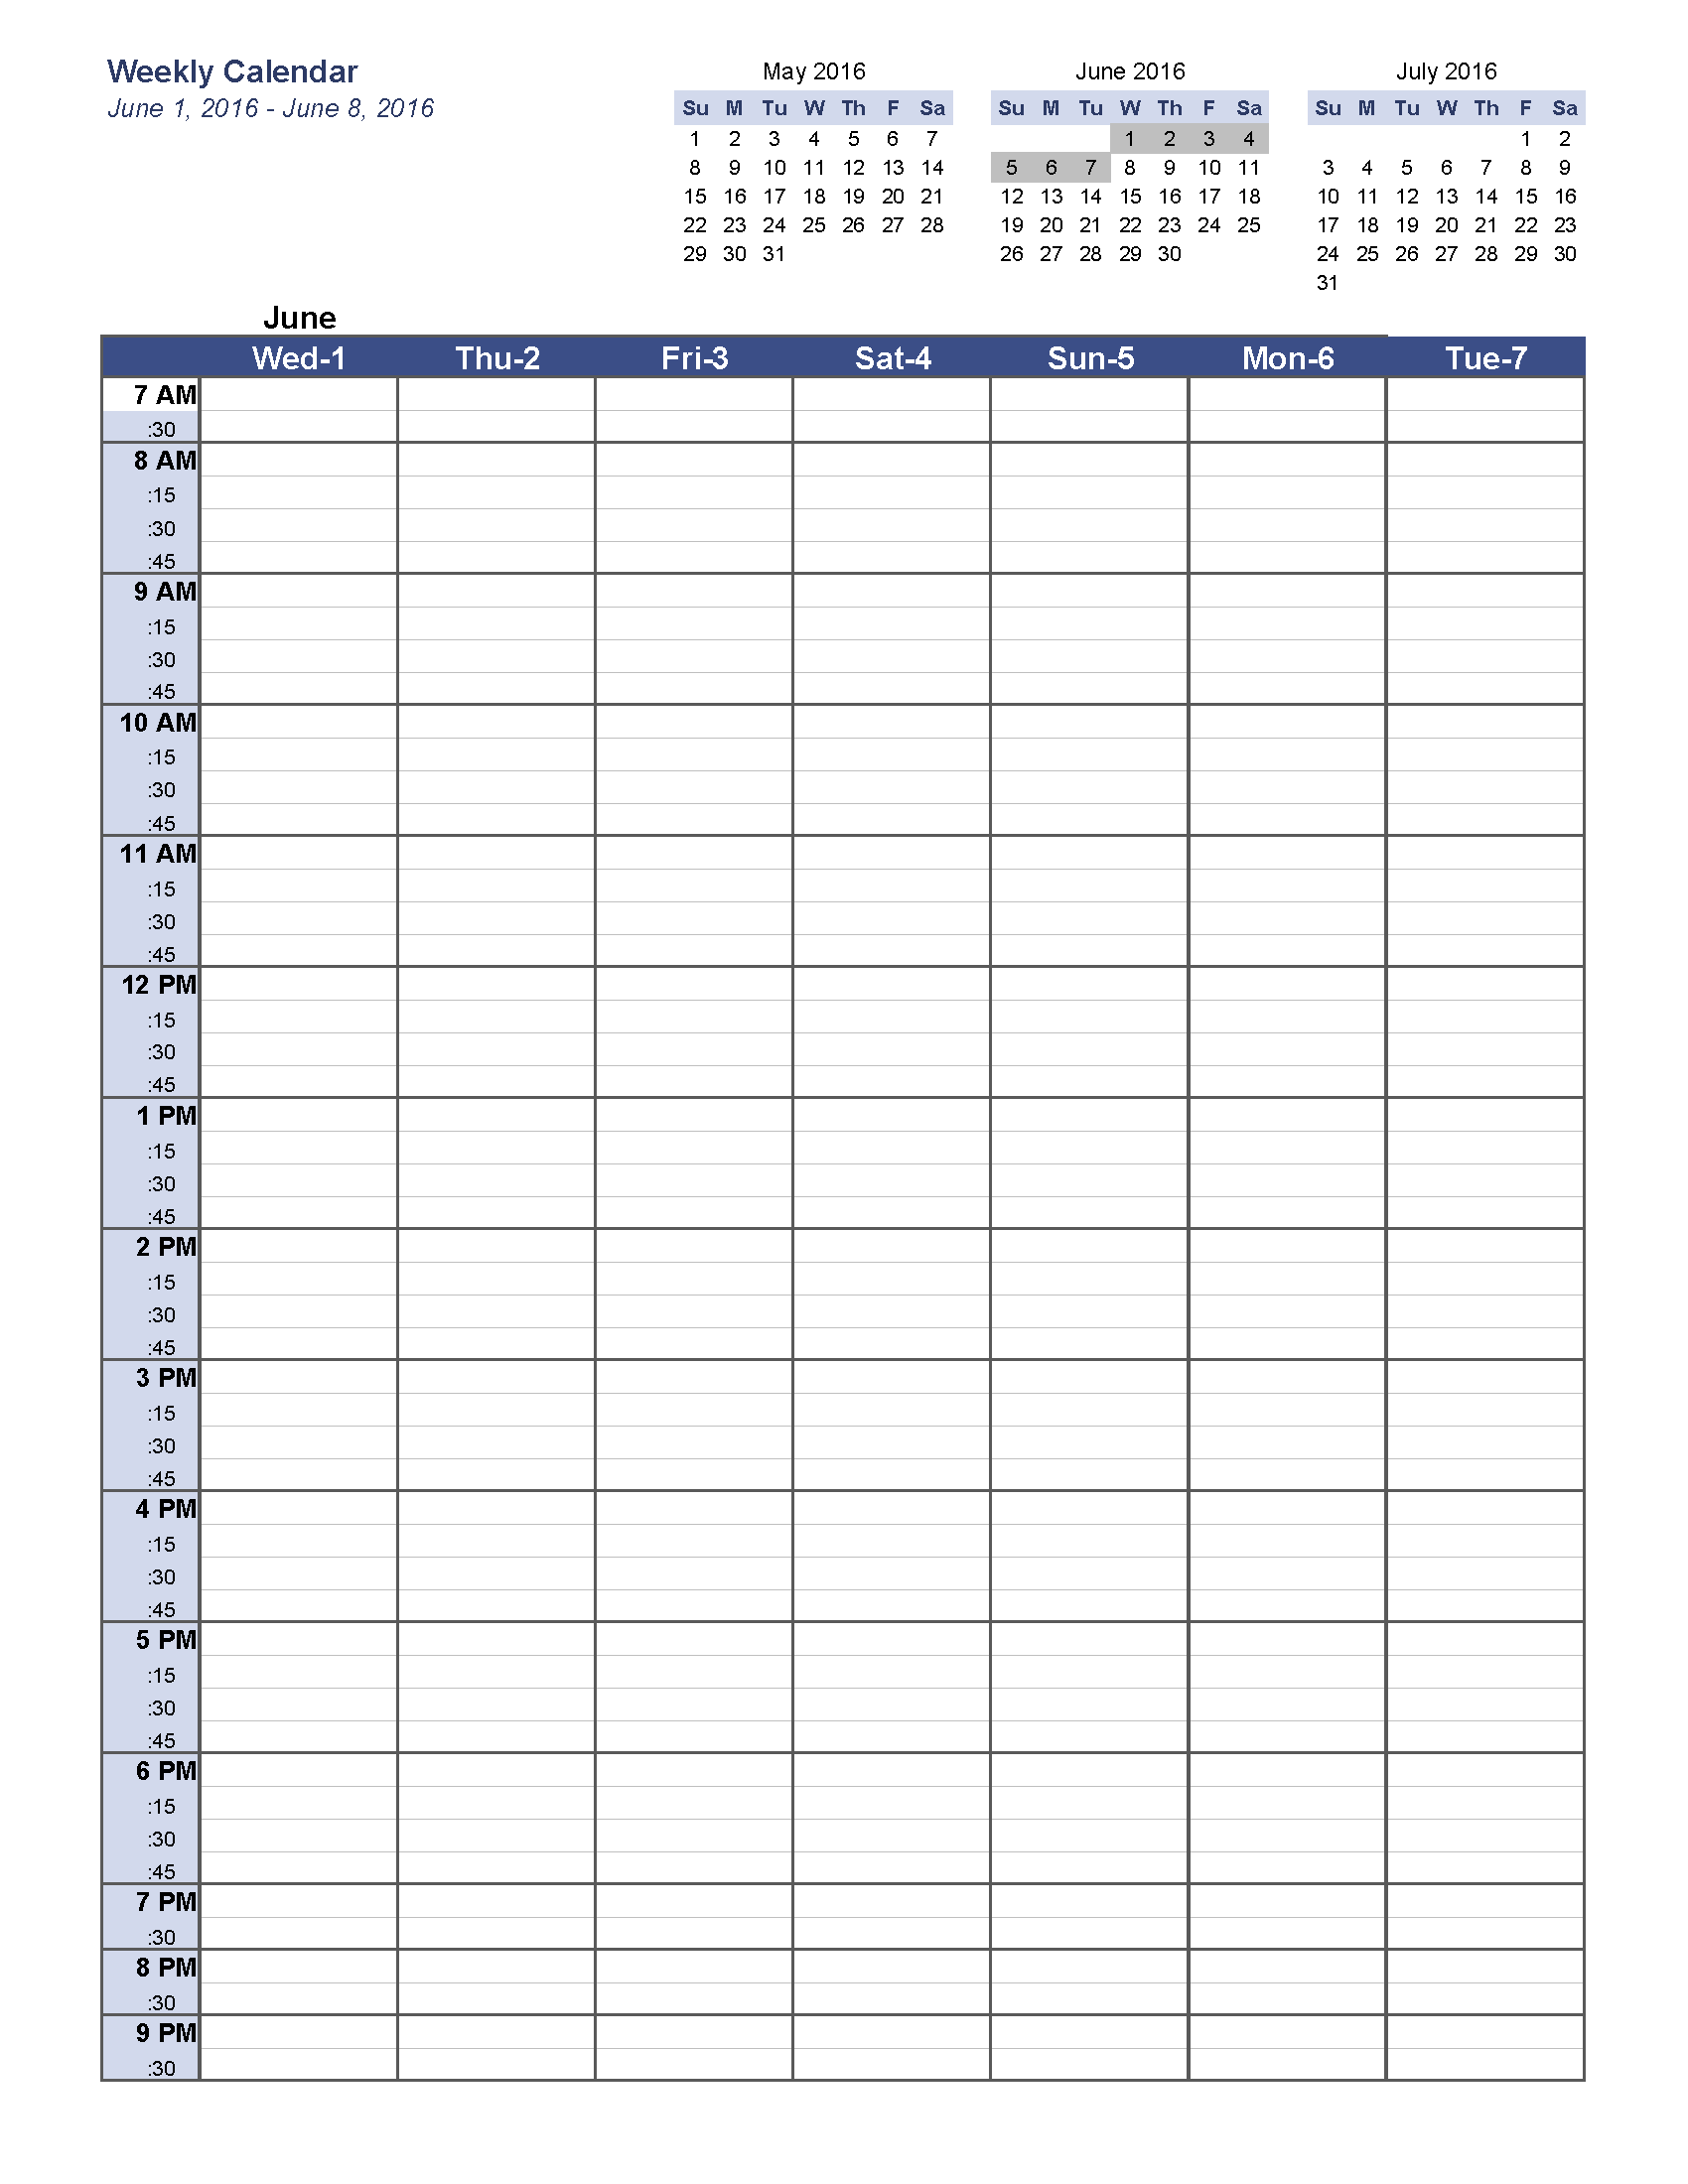 free weekly calendar template - june 2016 weekly calendar blank printable templates